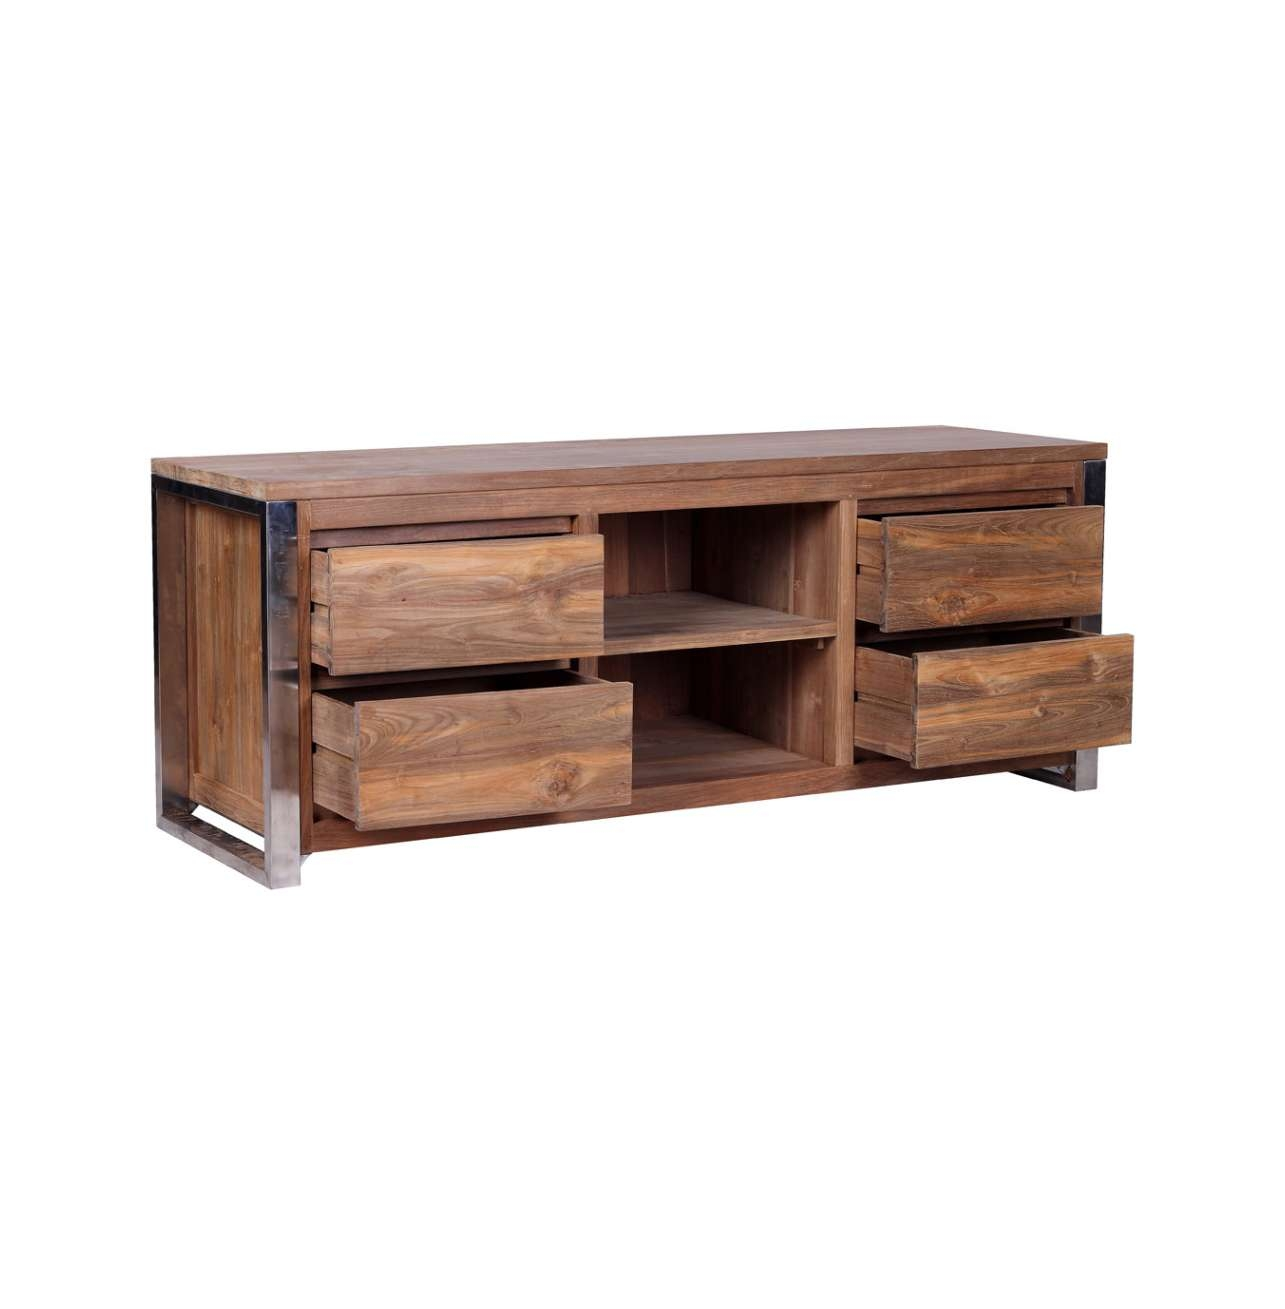 Rarem Reclaimed Wood Tv Stand – Reclaimed Teak And Stainless Steel Pertaining To Recycled Wood Tv Stands (View 8 of 15)